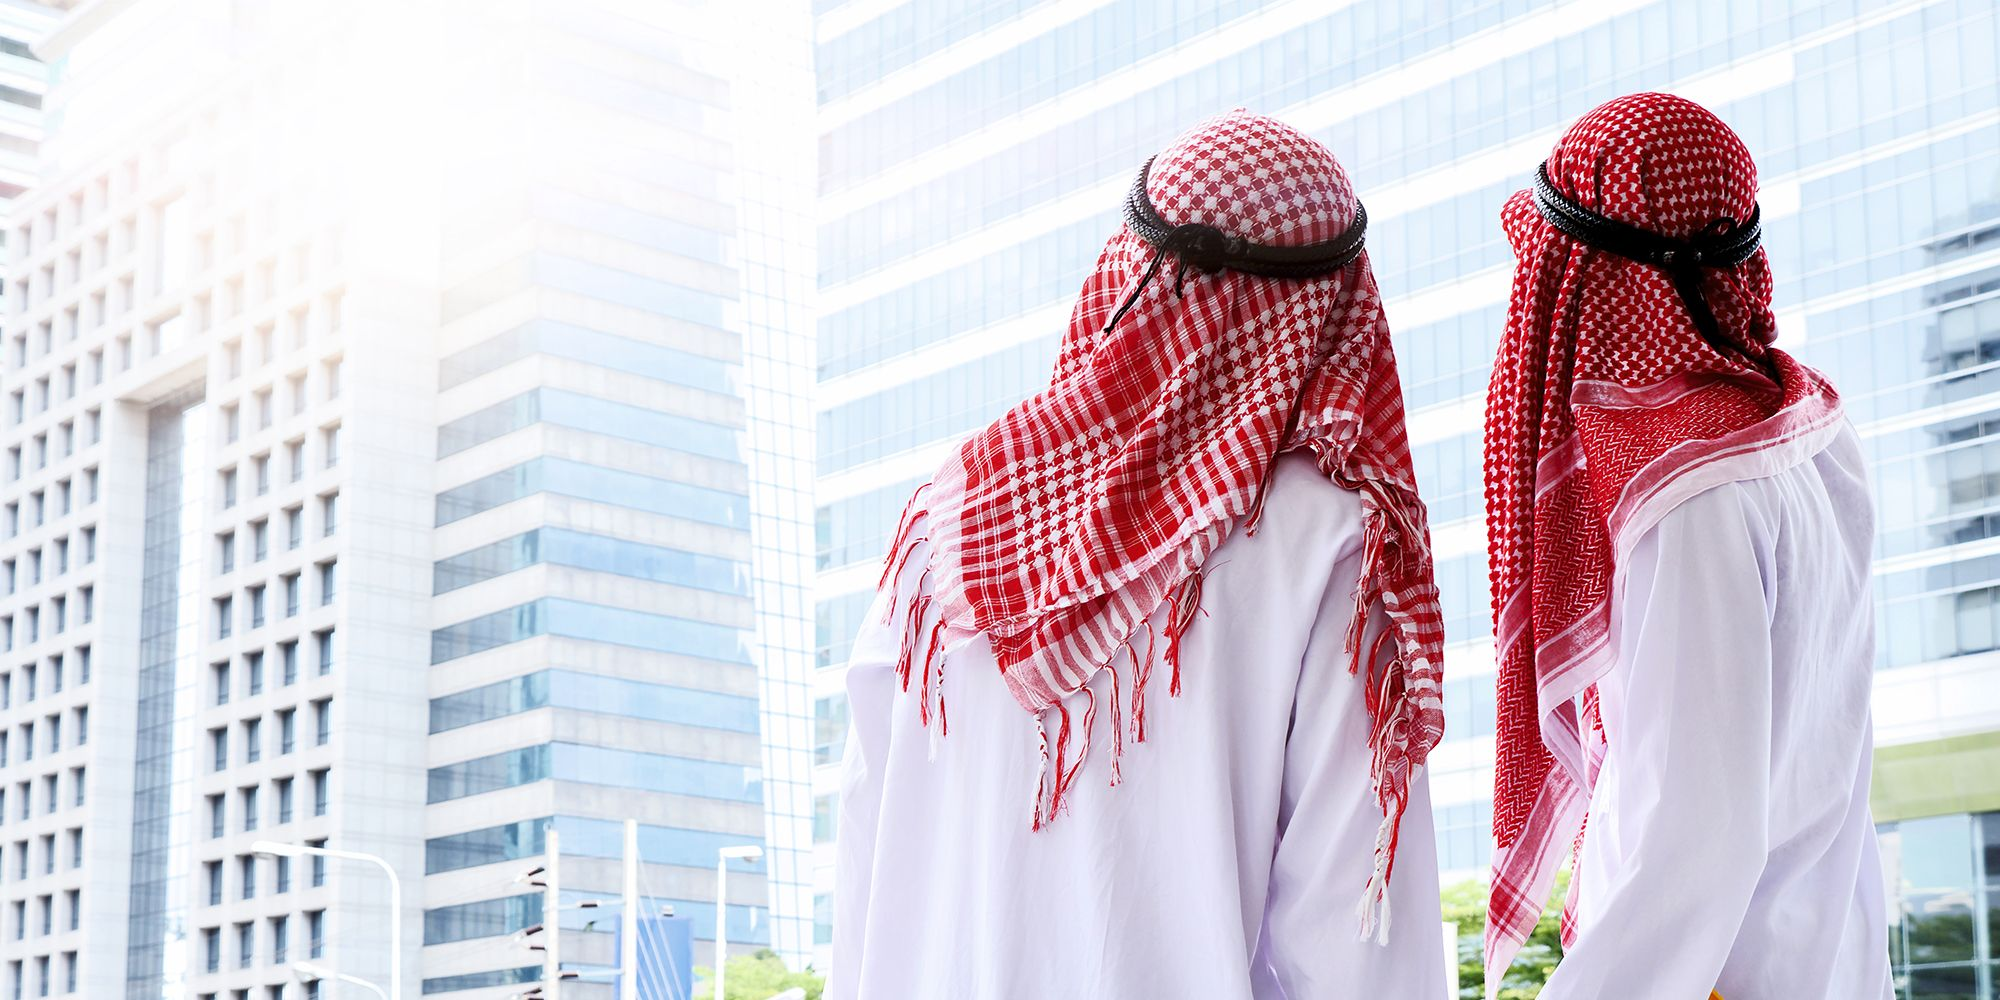 Some Saudi Men Think Their New Dress Code Is Unfair. Some Saudi Women Find That Ironic.